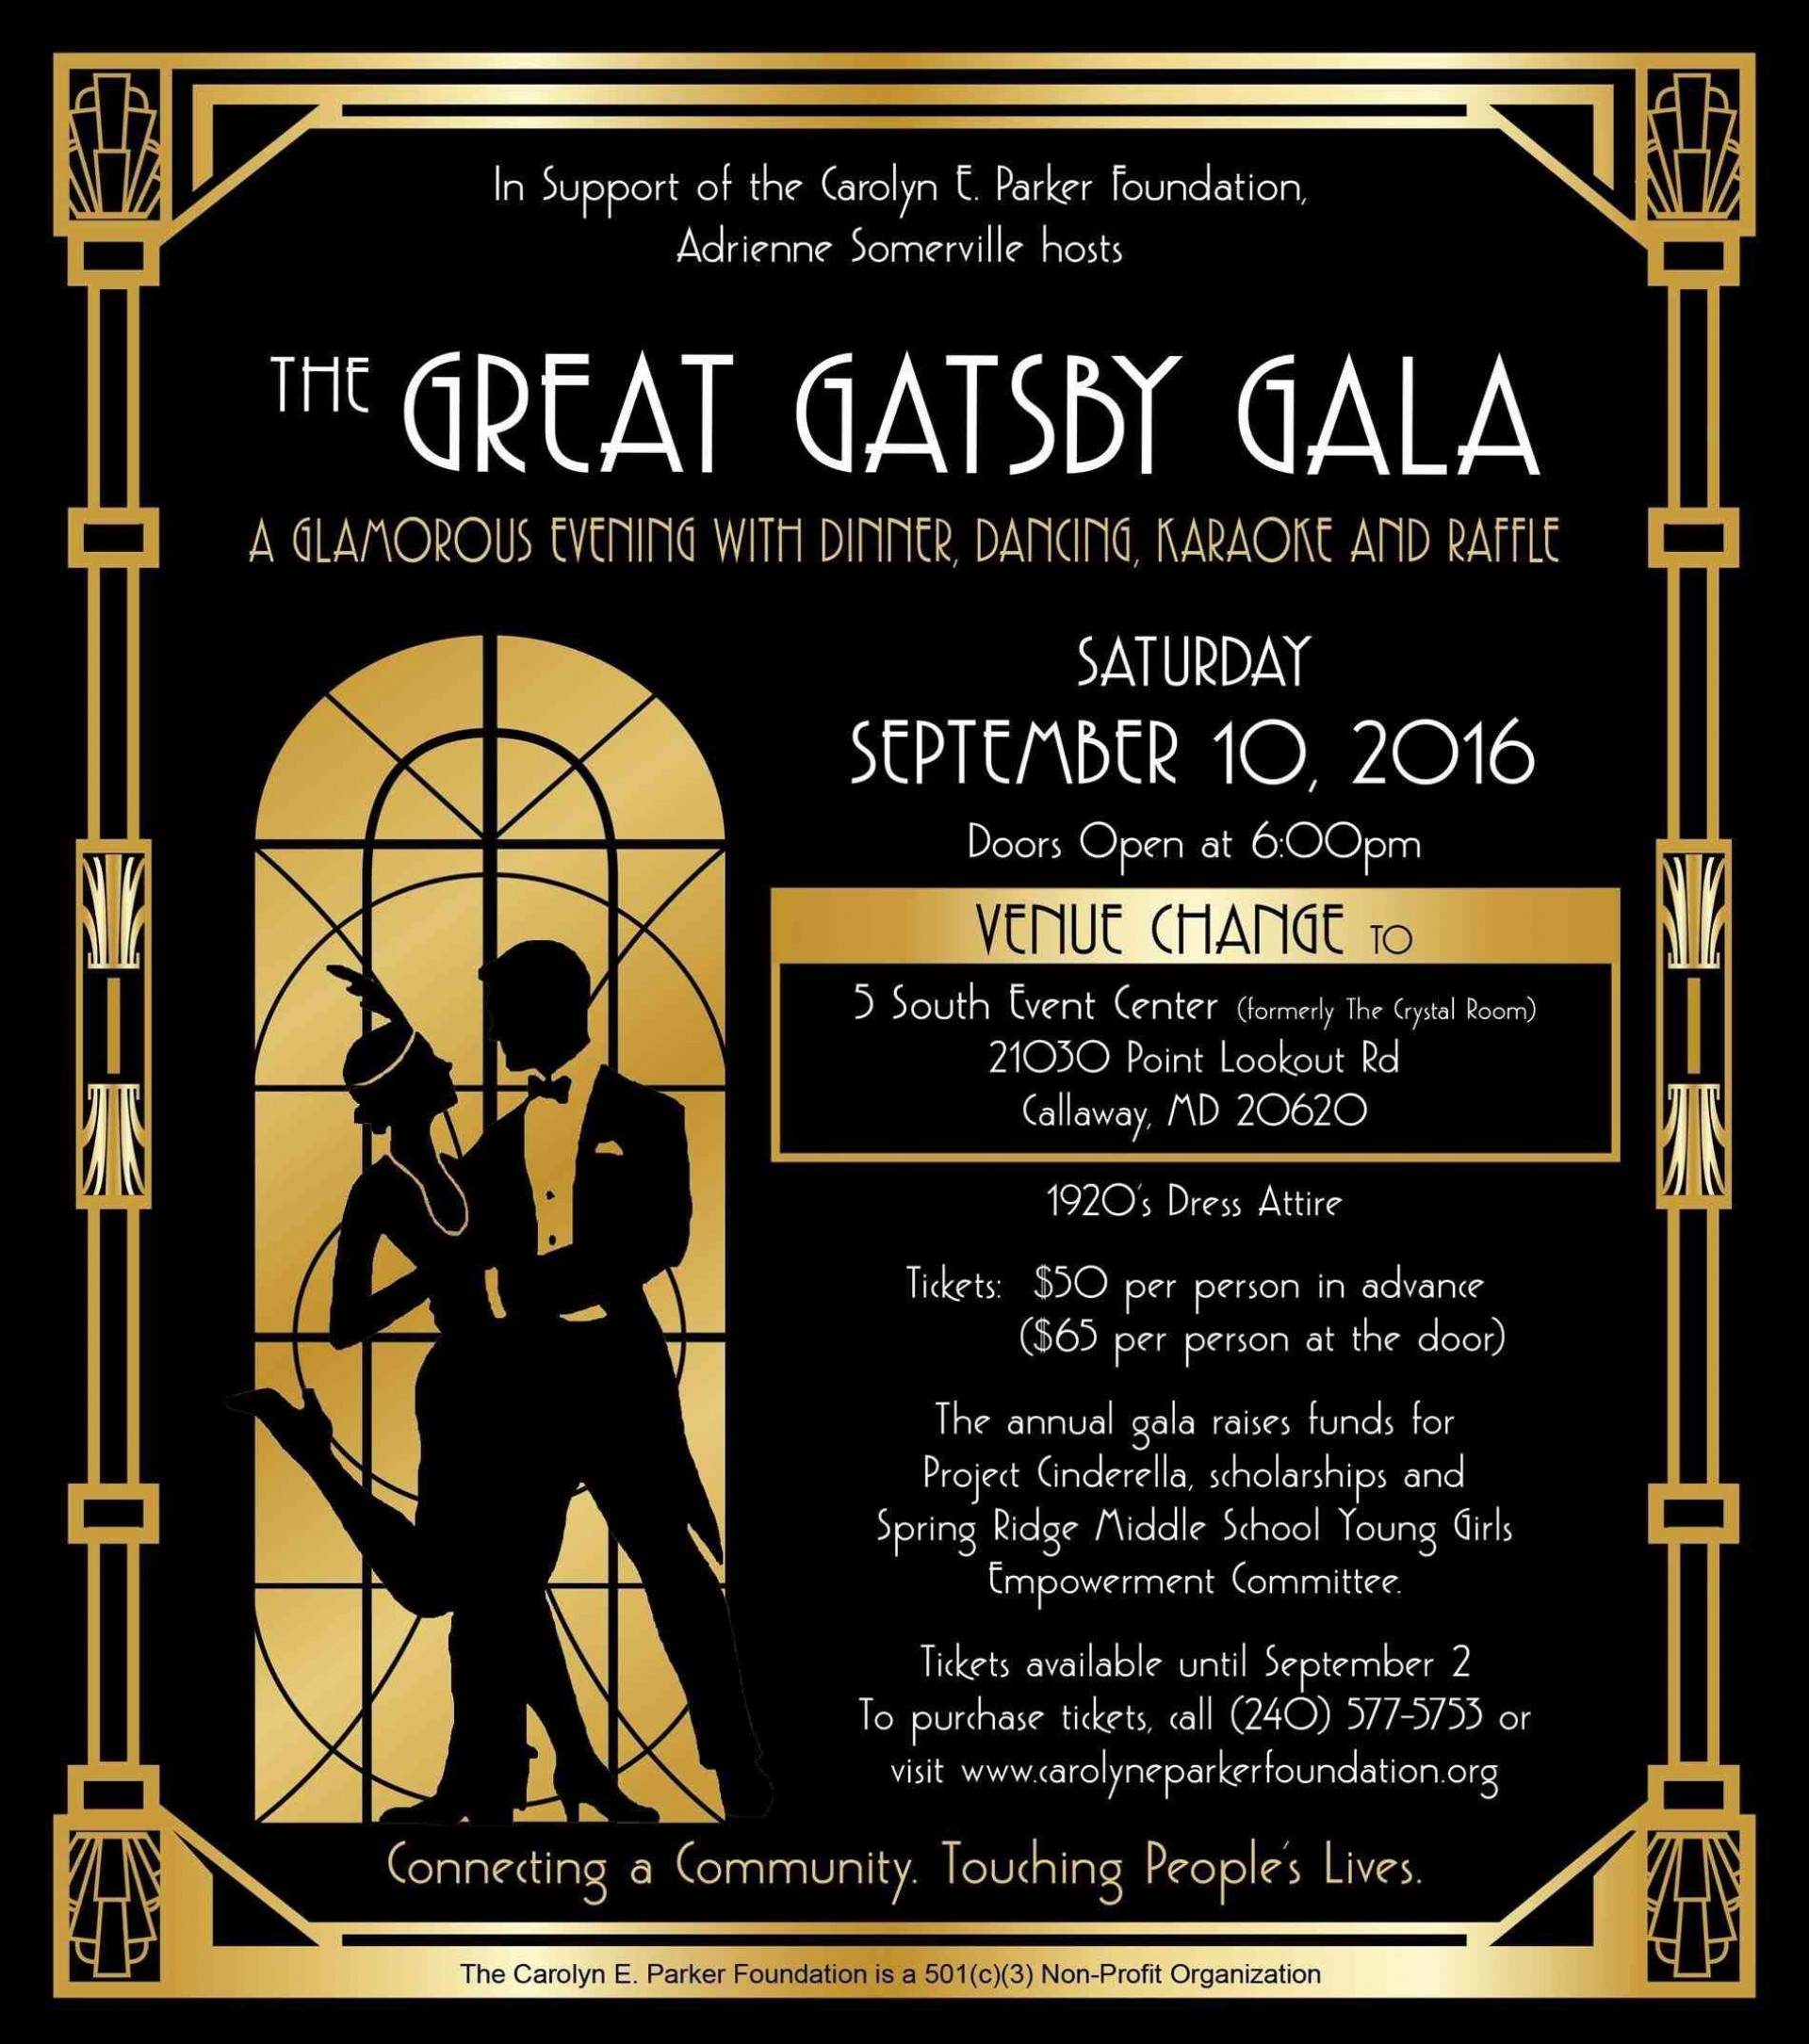 008 Marvelou Great Gatsby Invitation Template High Definition  Templates Free Download Blank1920